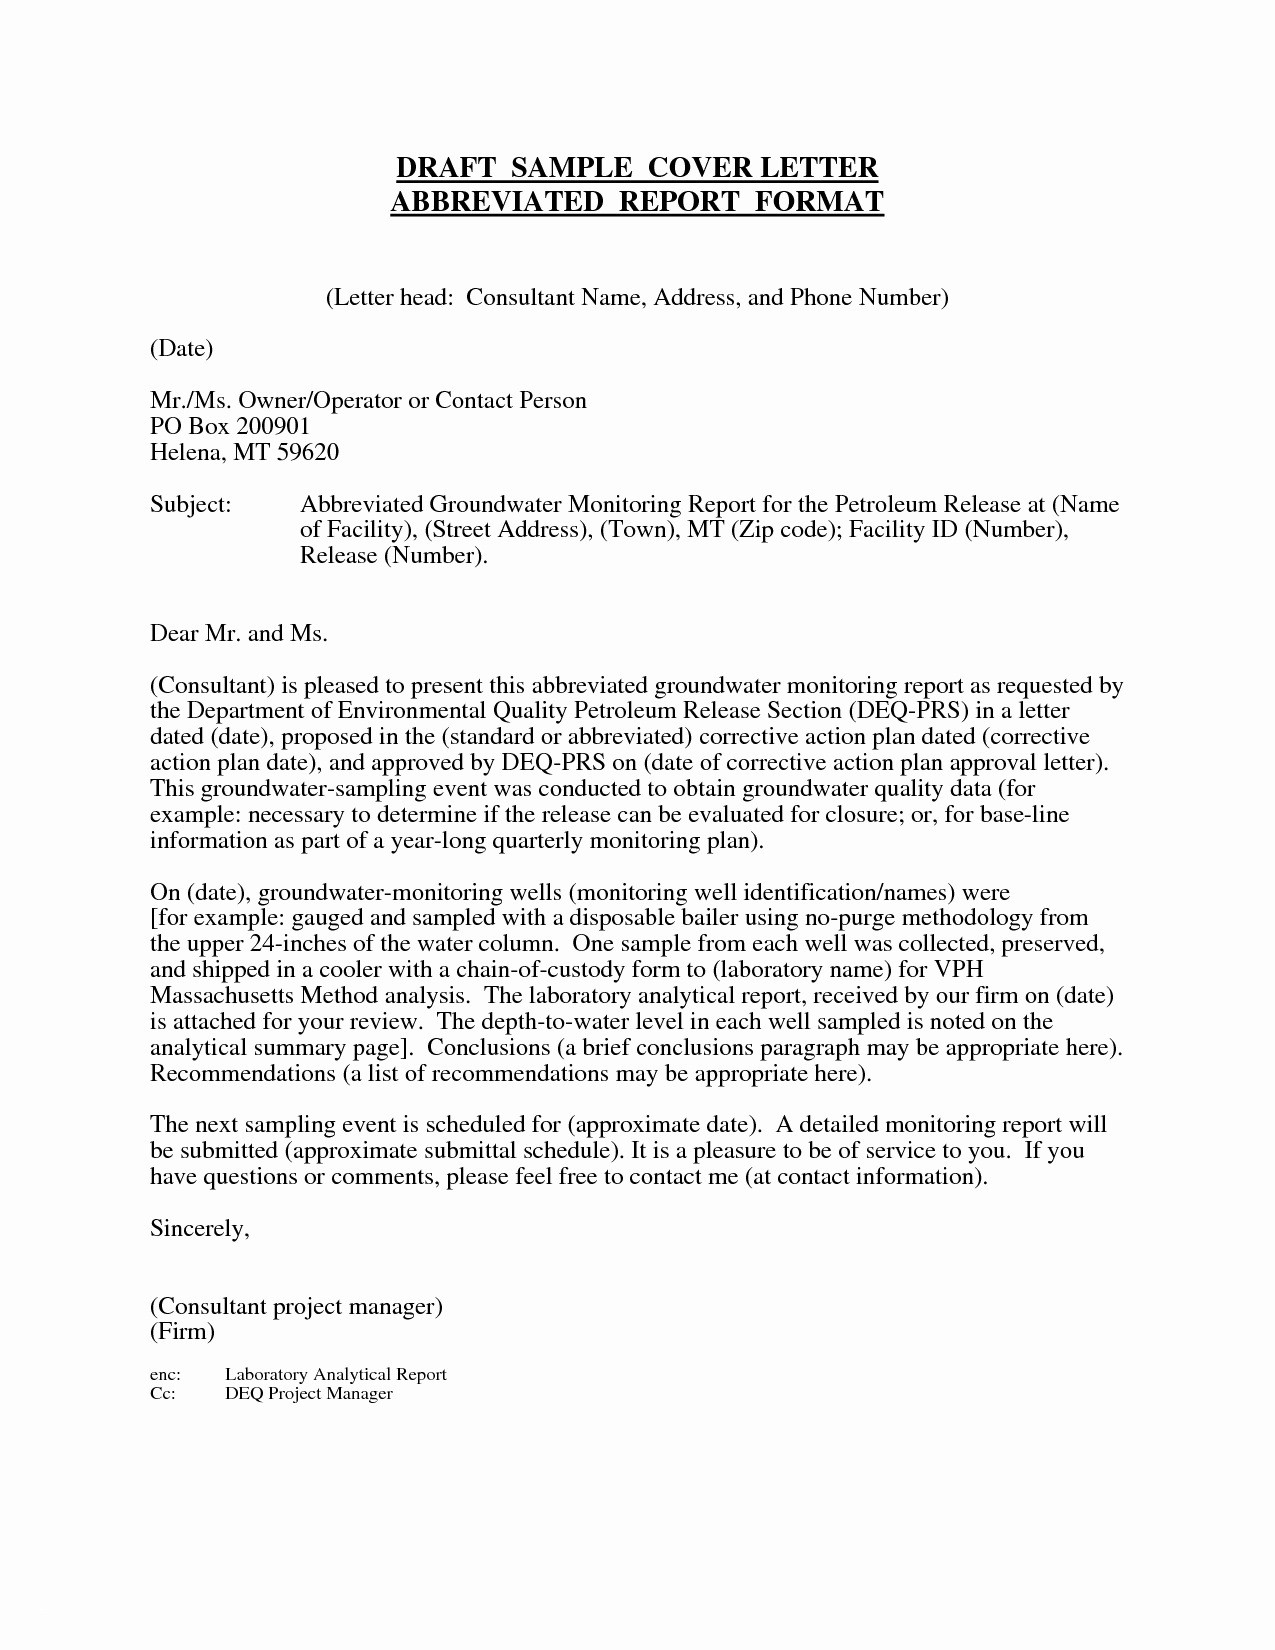 Amazing Cover Letter Template - Cover Letters for Resumes Free Awesome Resume Cover Letter Template